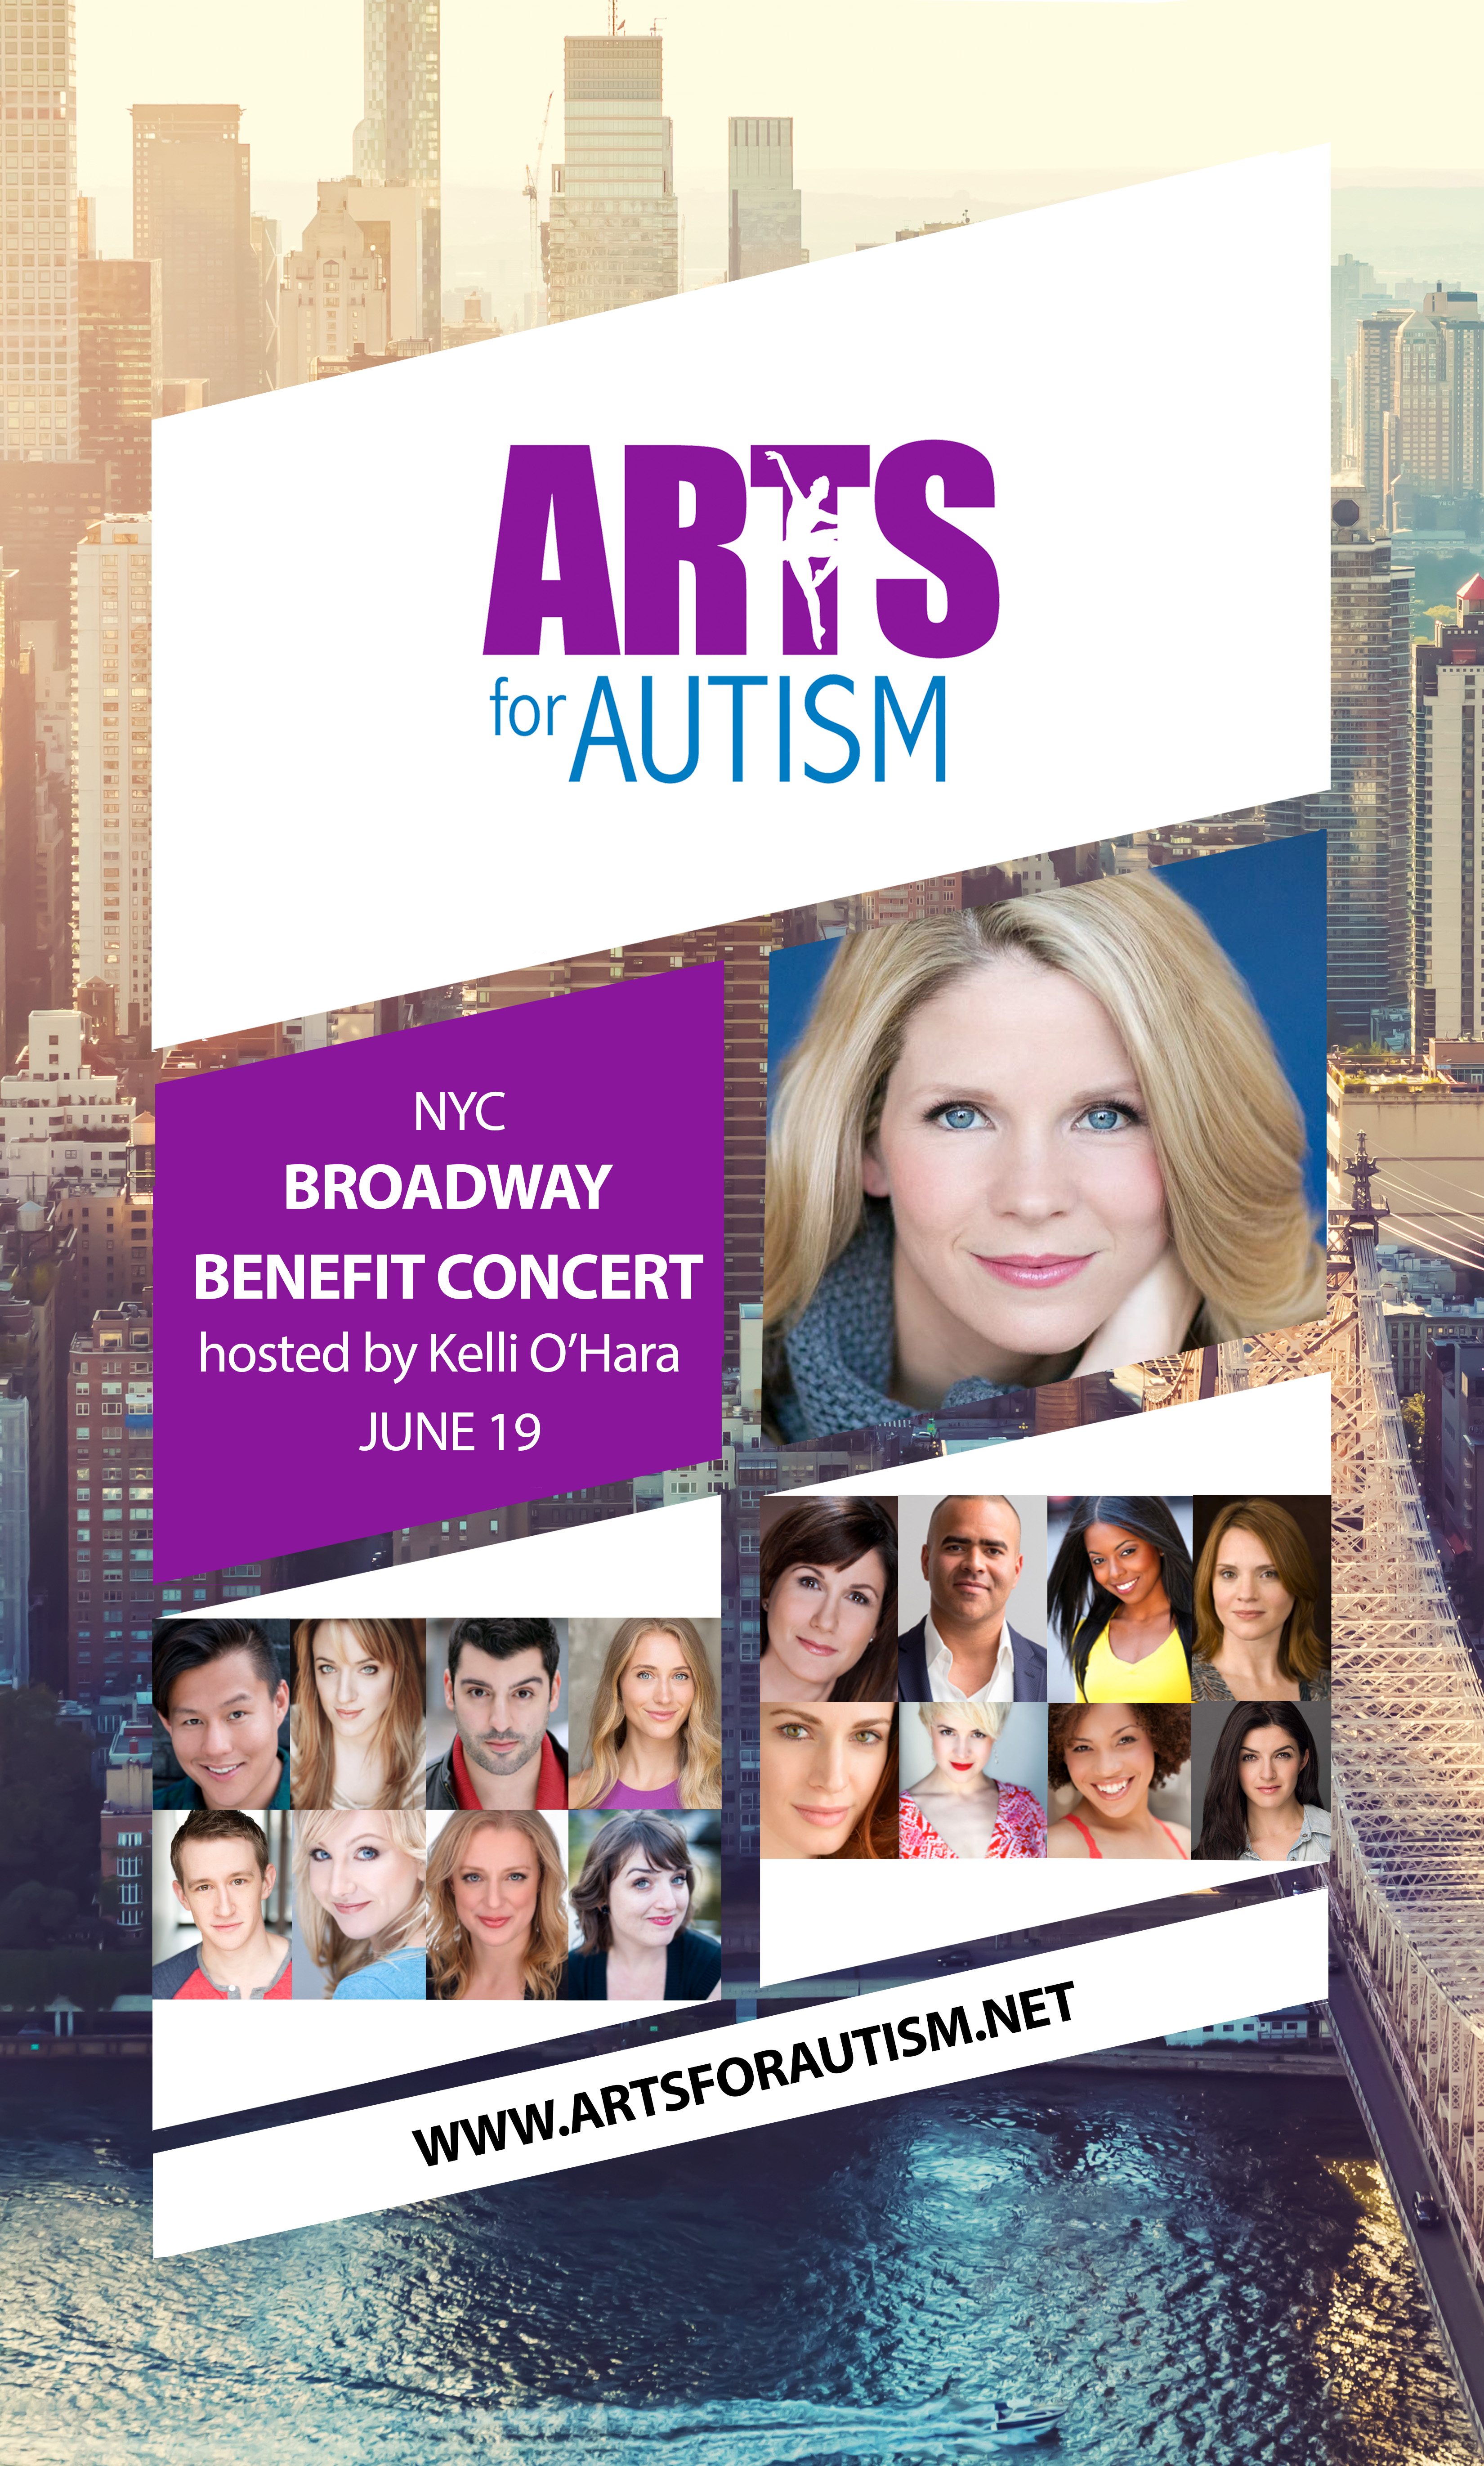 150 Young Artists Join All-Star Broadway Cast In ARTS FOR AUTISM Benefit Concert